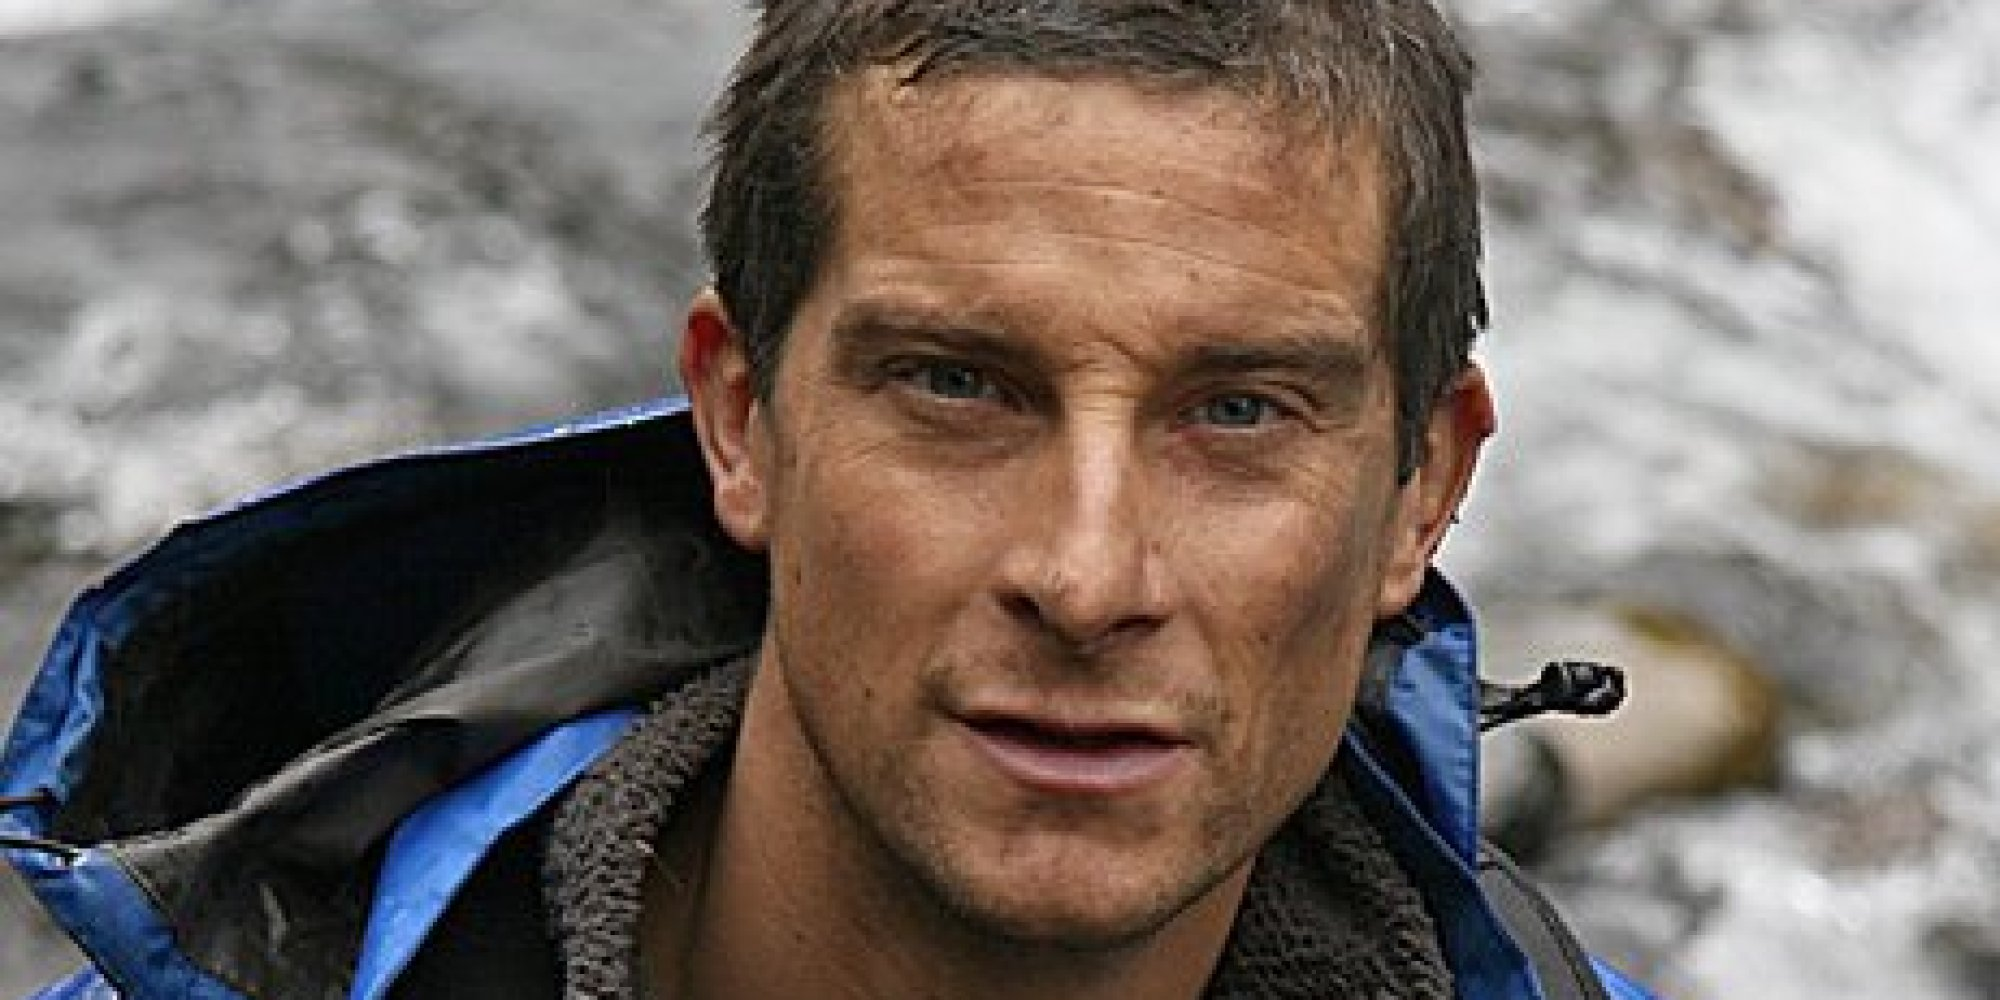 HQ Bear Grylls Wallpapers | File 233.59Kb